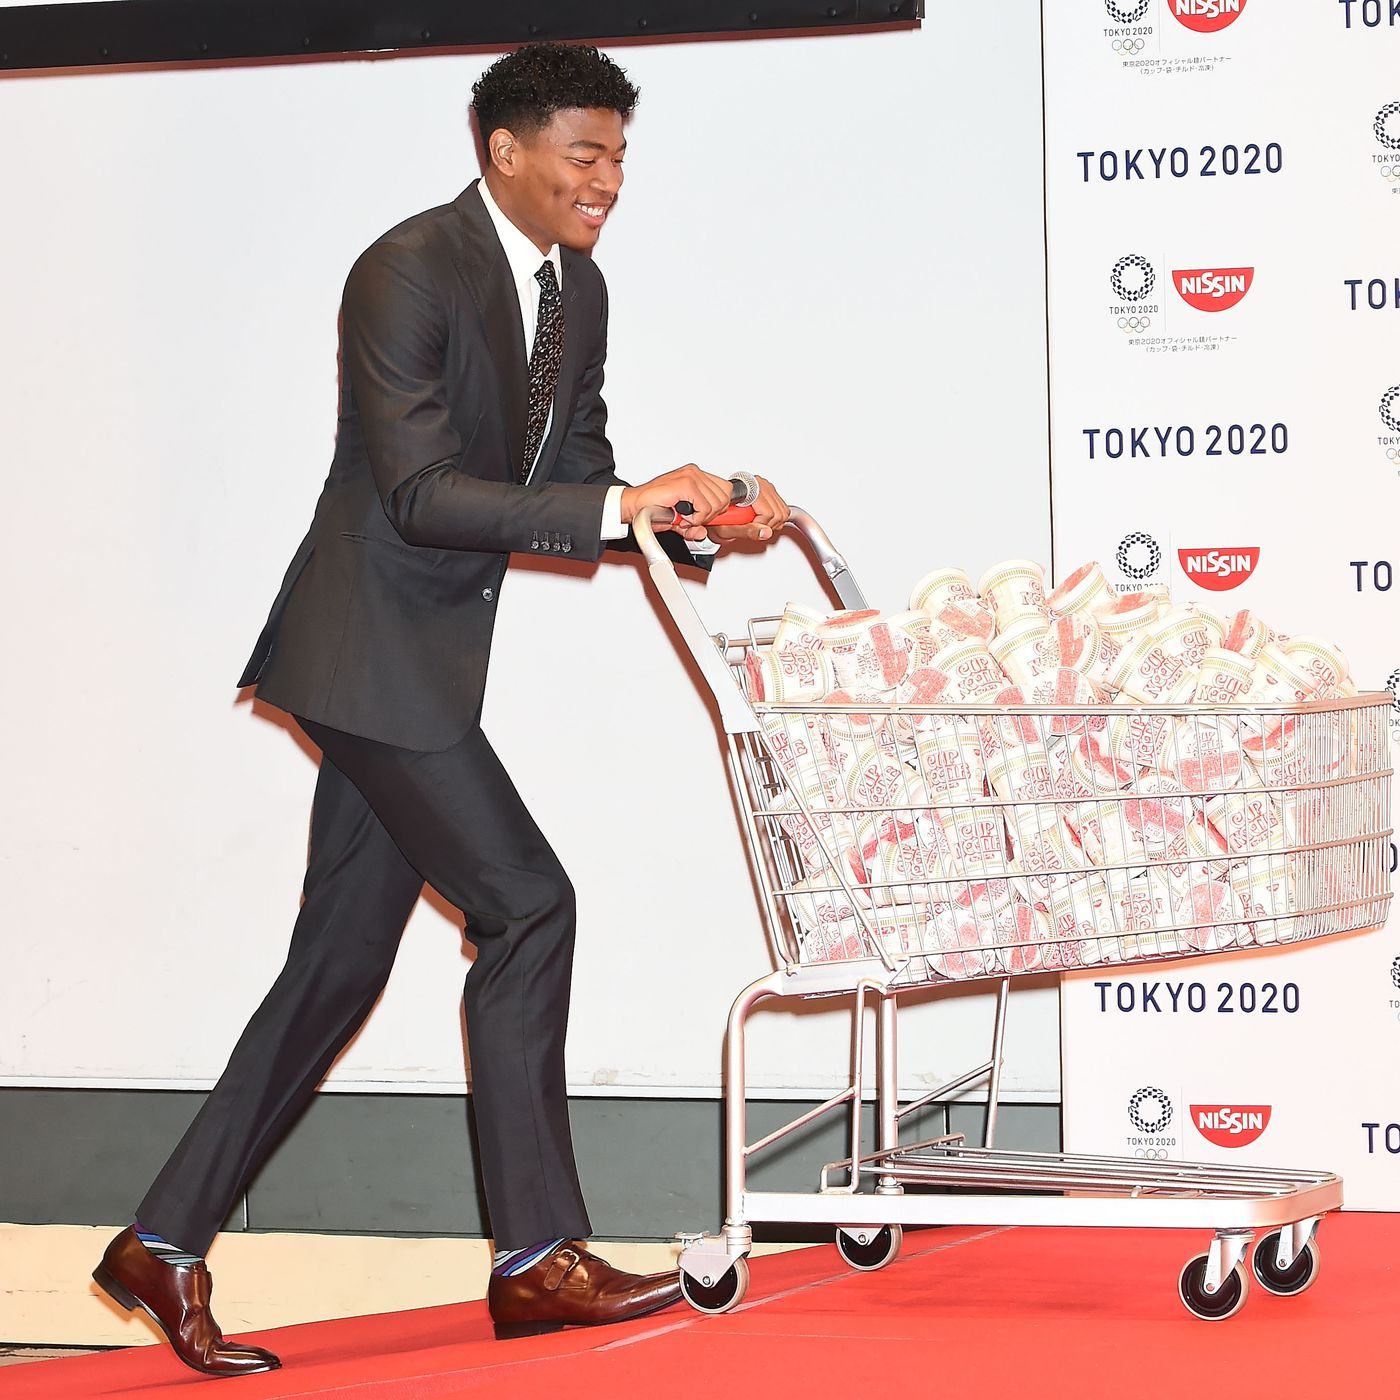 Best Shopping Carts 2020 Wizards Mailbag answers: Hachimura's potential, Mahinmi's contract